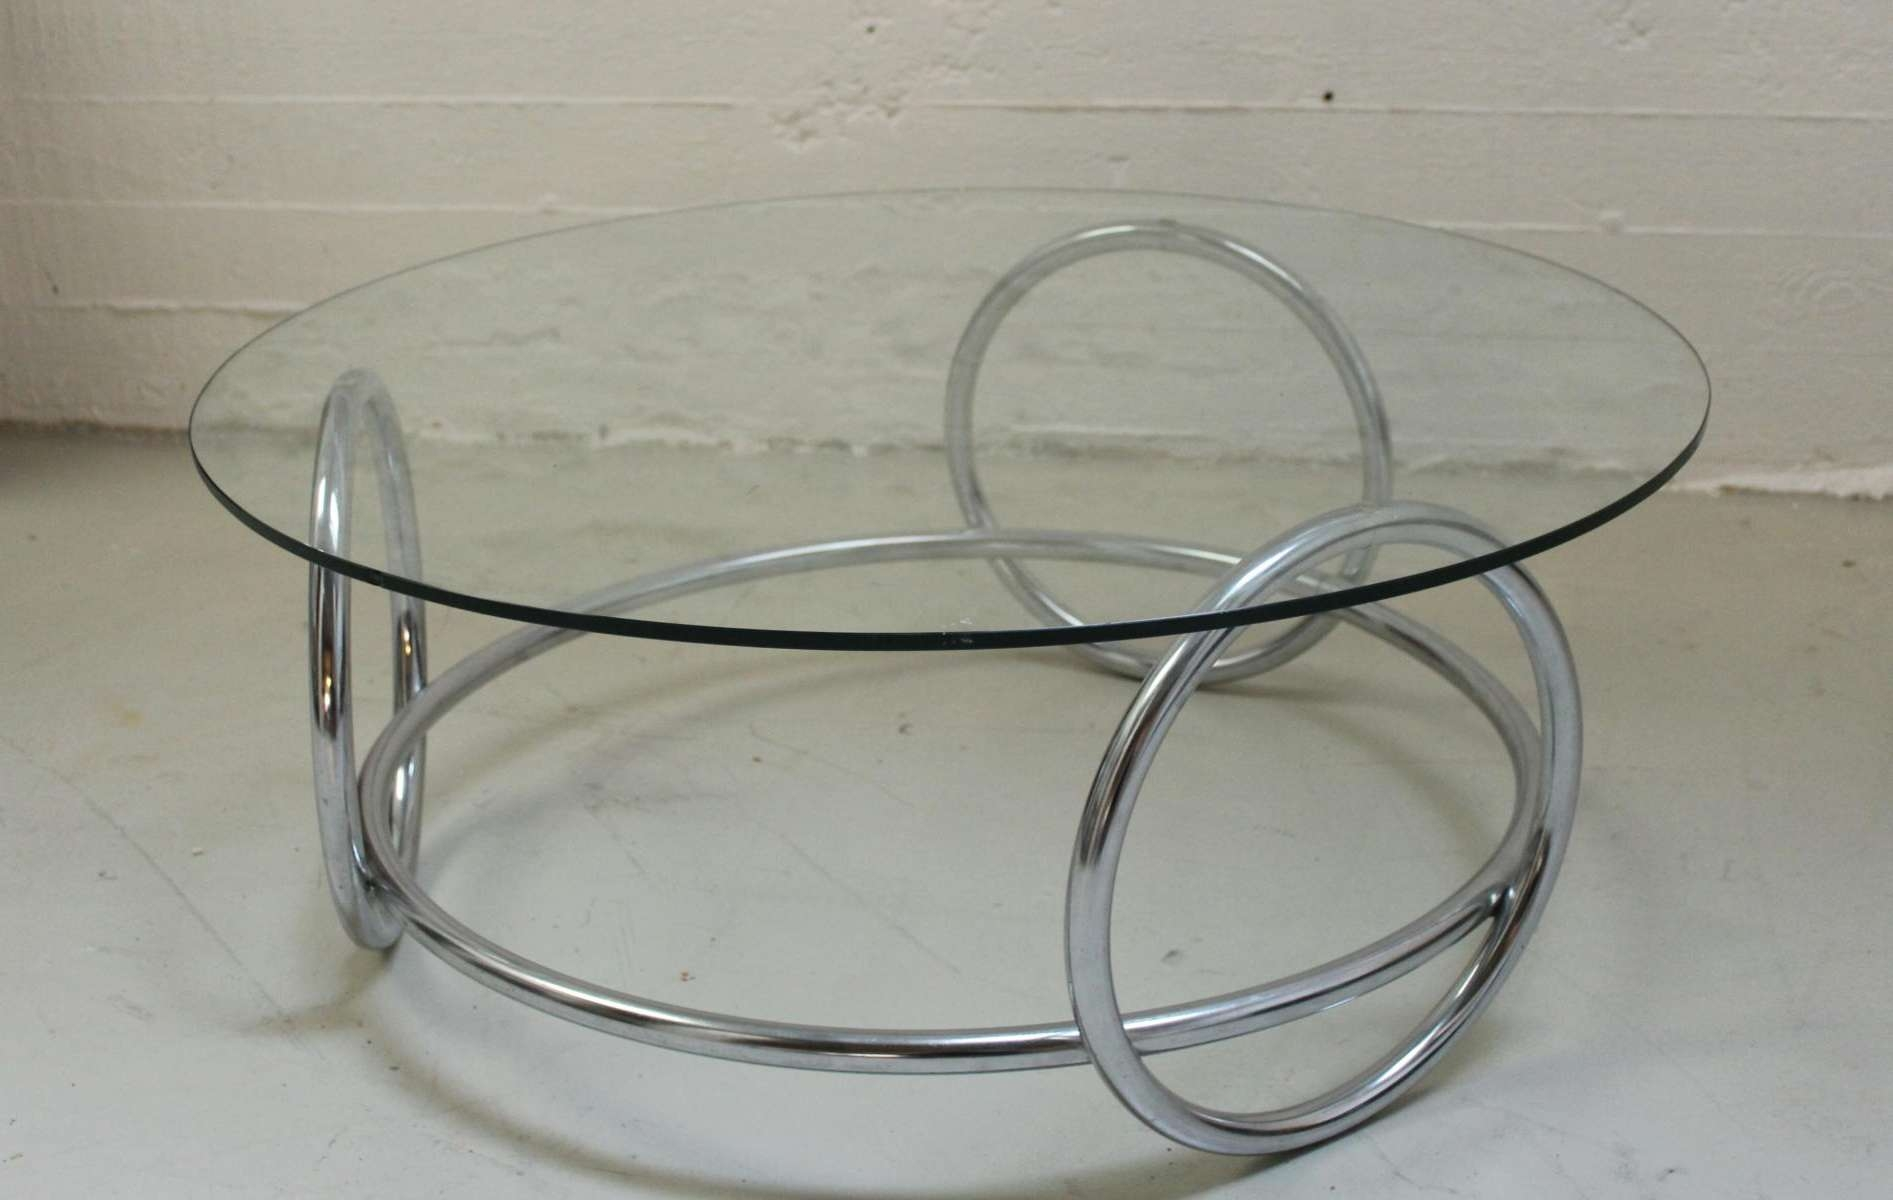 Fashionable Glass And Chrome Coffee Tables With Chrome Ring And Glass Coffee Table, 1970S For Sale At Pamono (View 12 of 20)